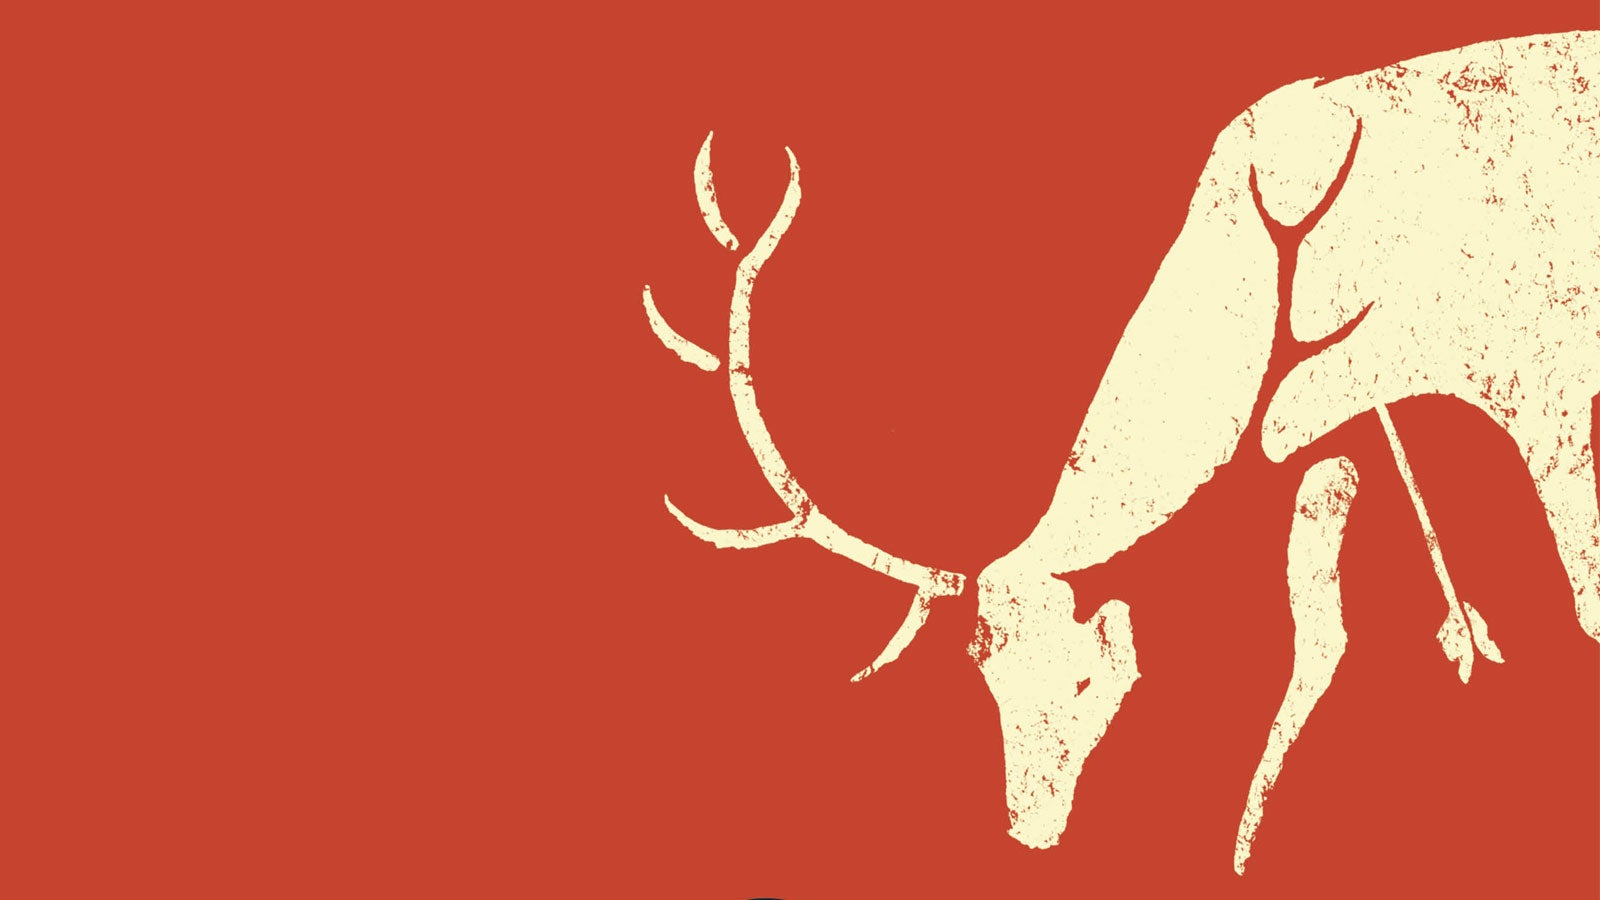 Illustration of a deer from the cover of Grimoire